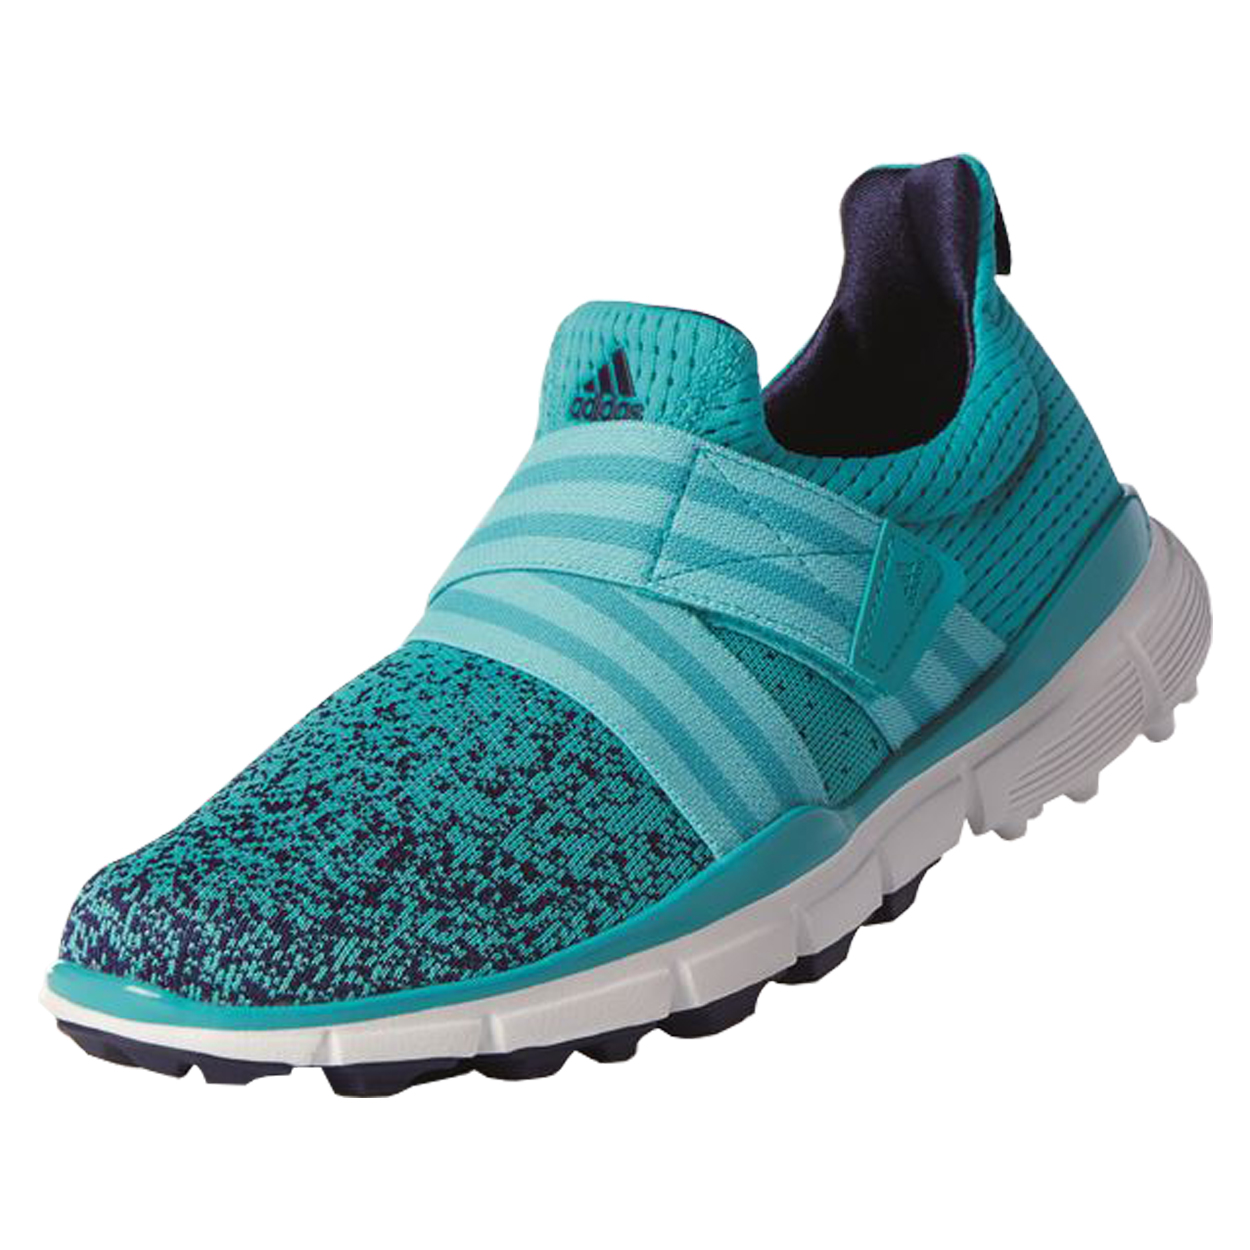 adidas climacool golf shoes womens nz